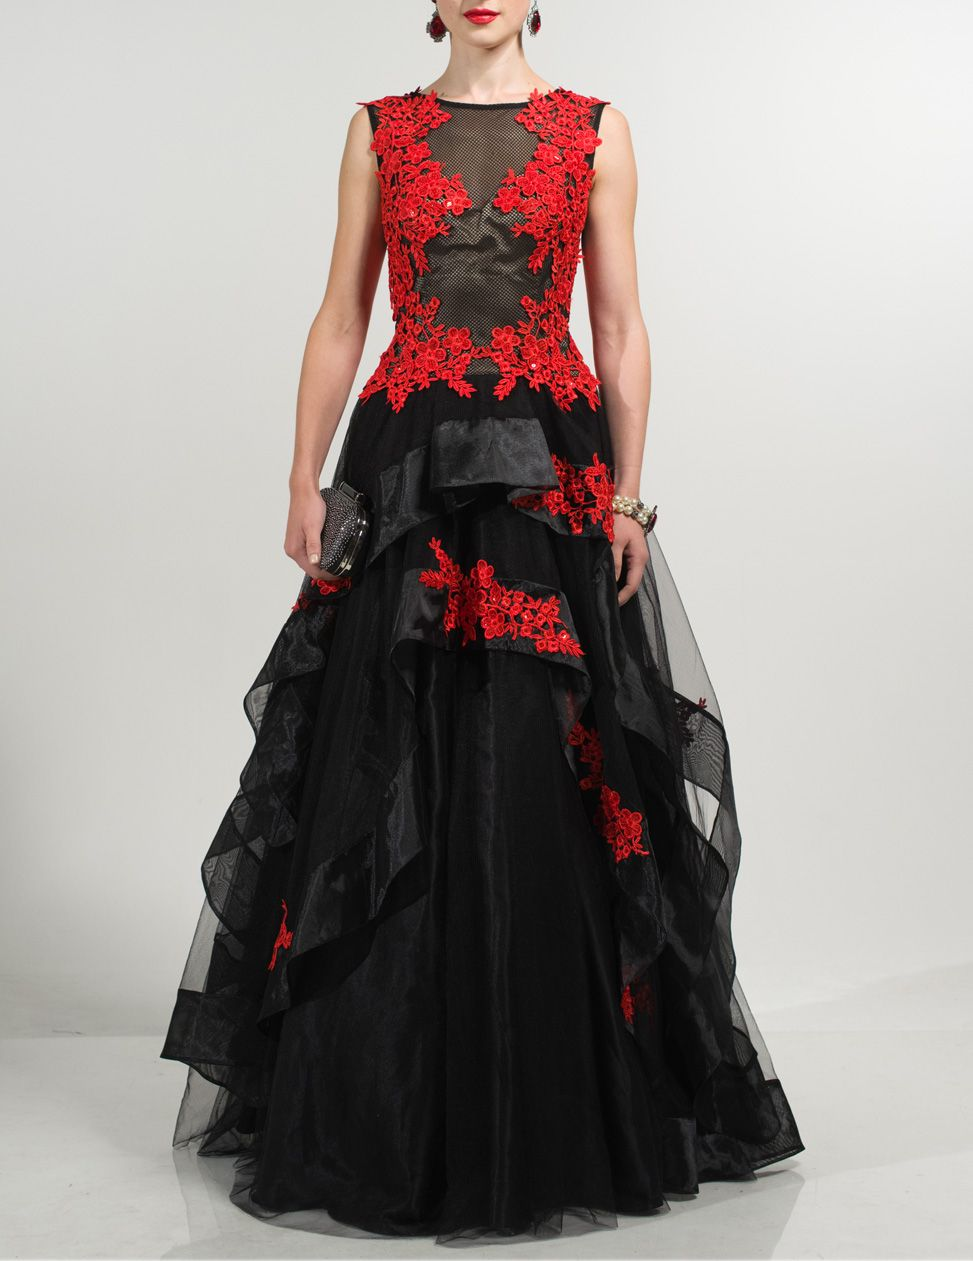 Tarub black and red embroidered maxi dress